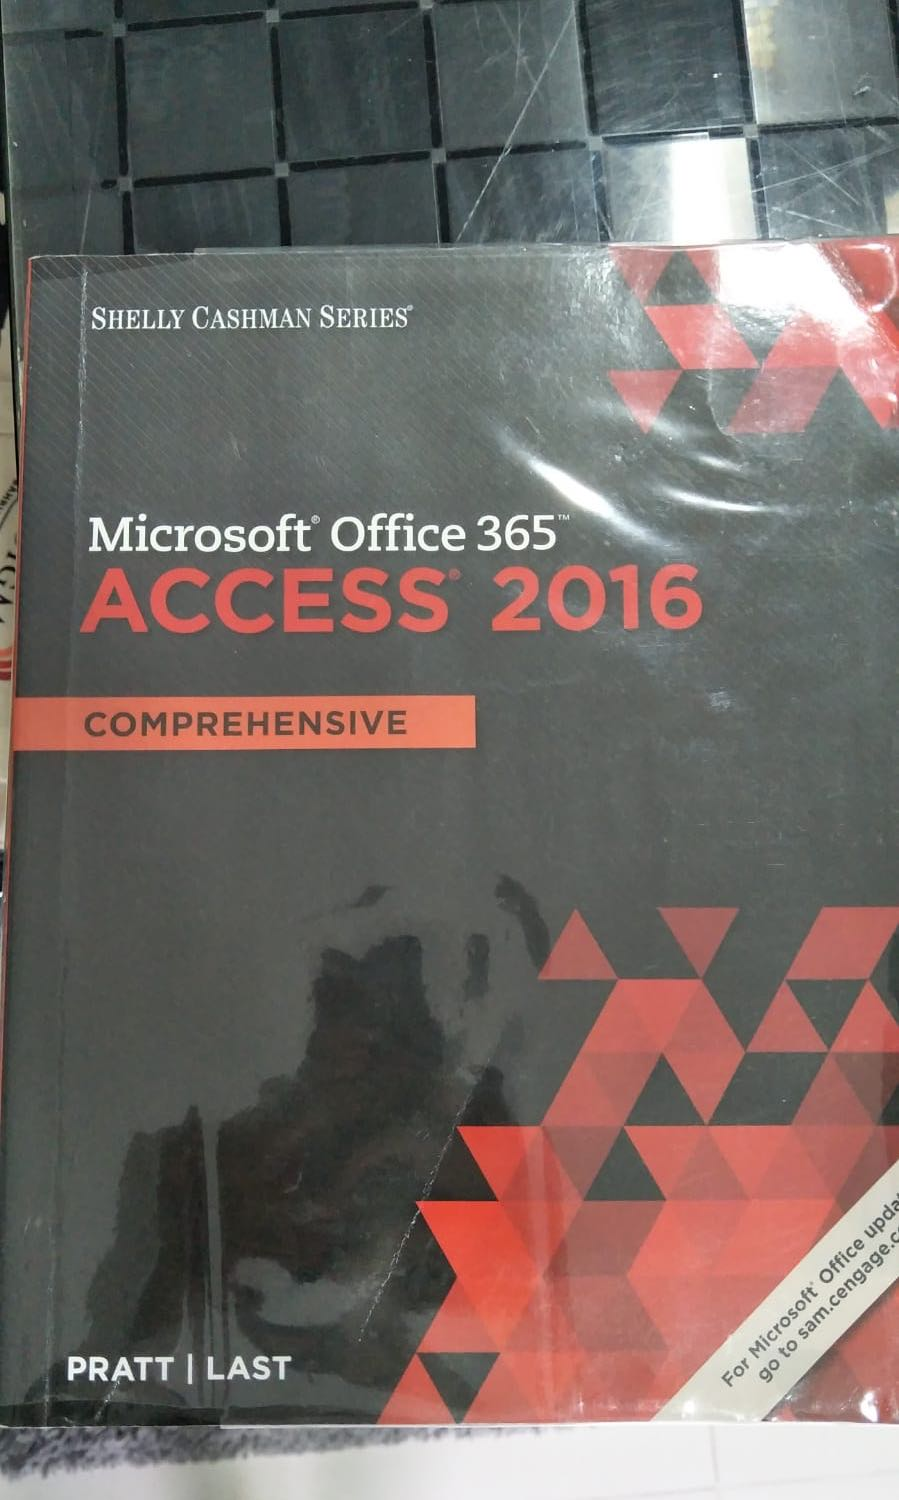 microsoft office access books stationery magazines others on